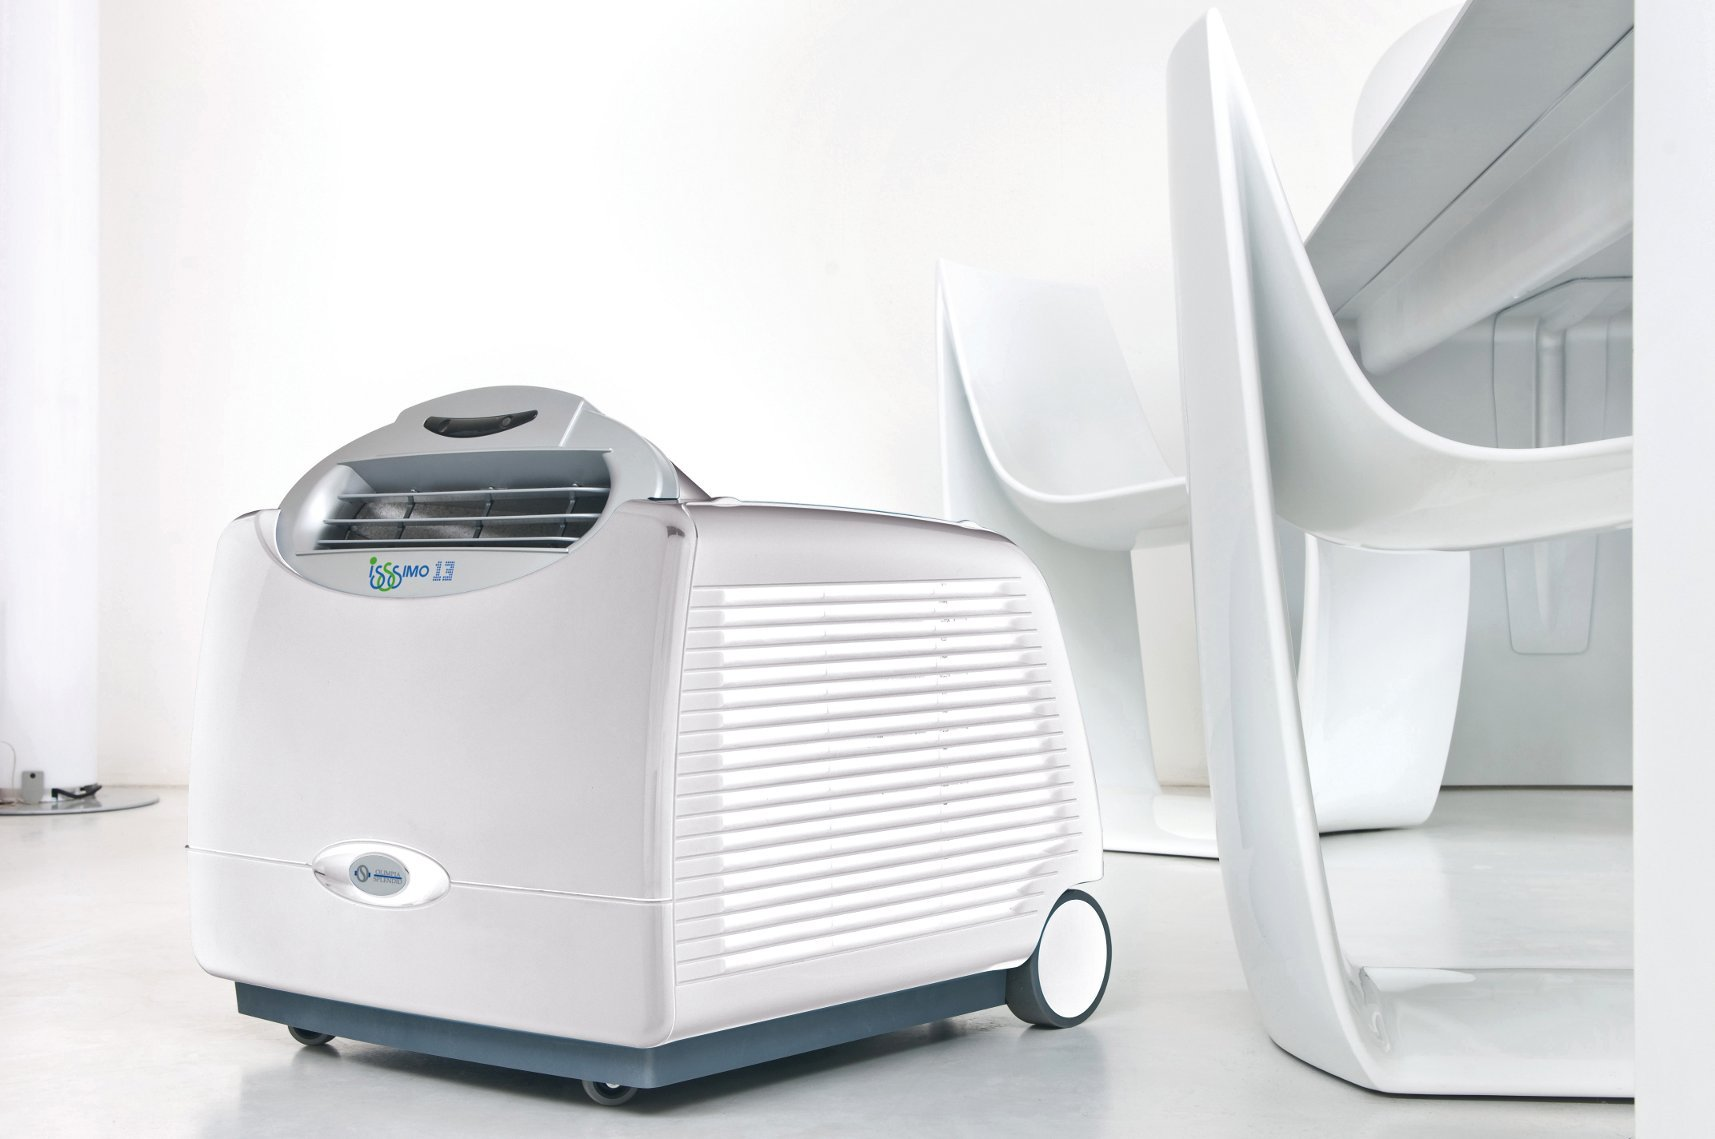 Shop portable air conditioners at The Portable Air Shop. Featuring portable AC units, window air conditioners & dehumidifiers to improve air quality.